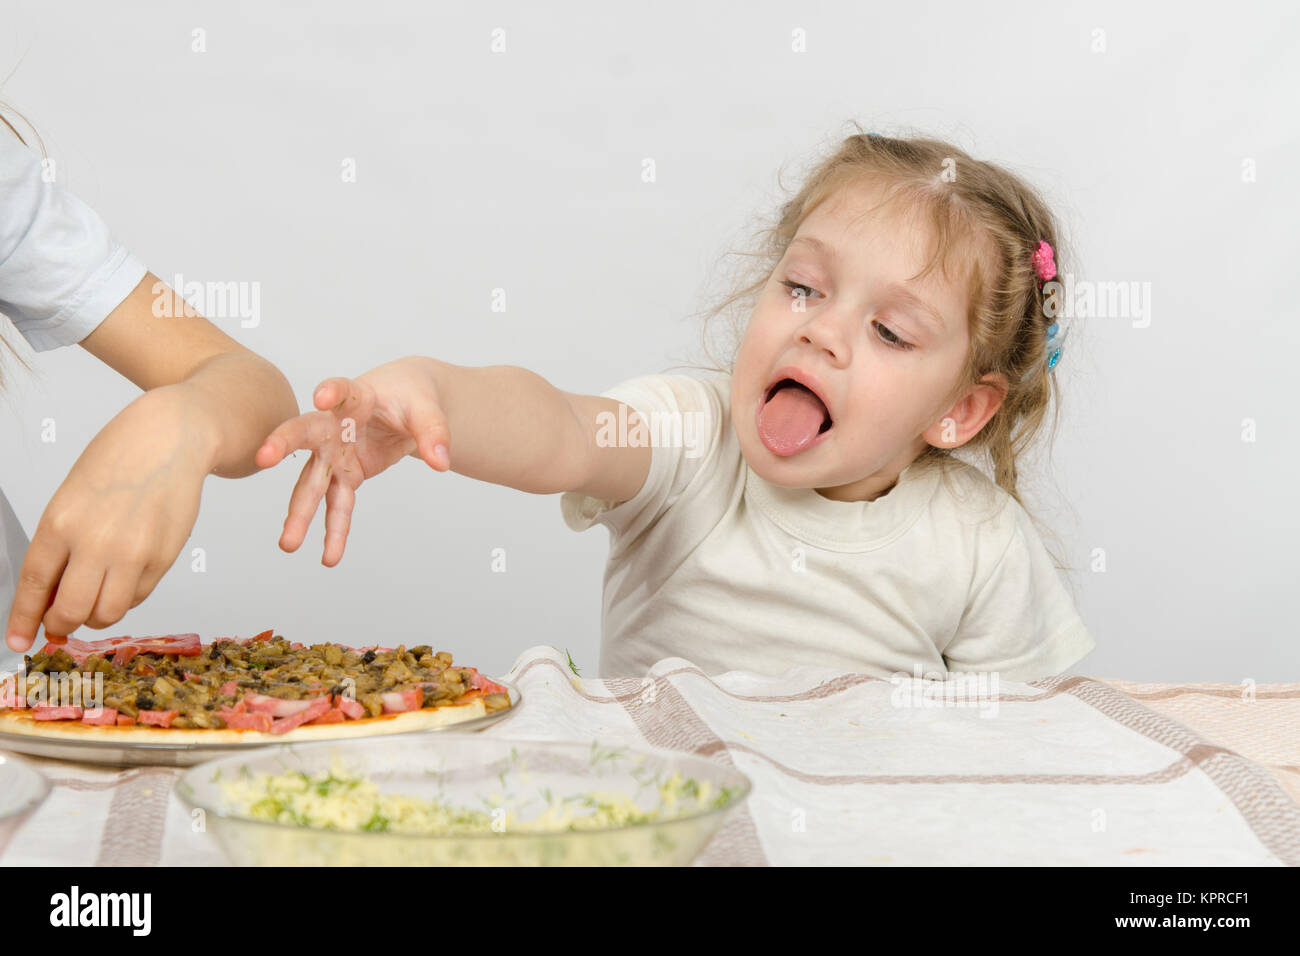 Little girl with tongue sticking out a hand to pull the pizza, which prepares her older sister Stock Photo